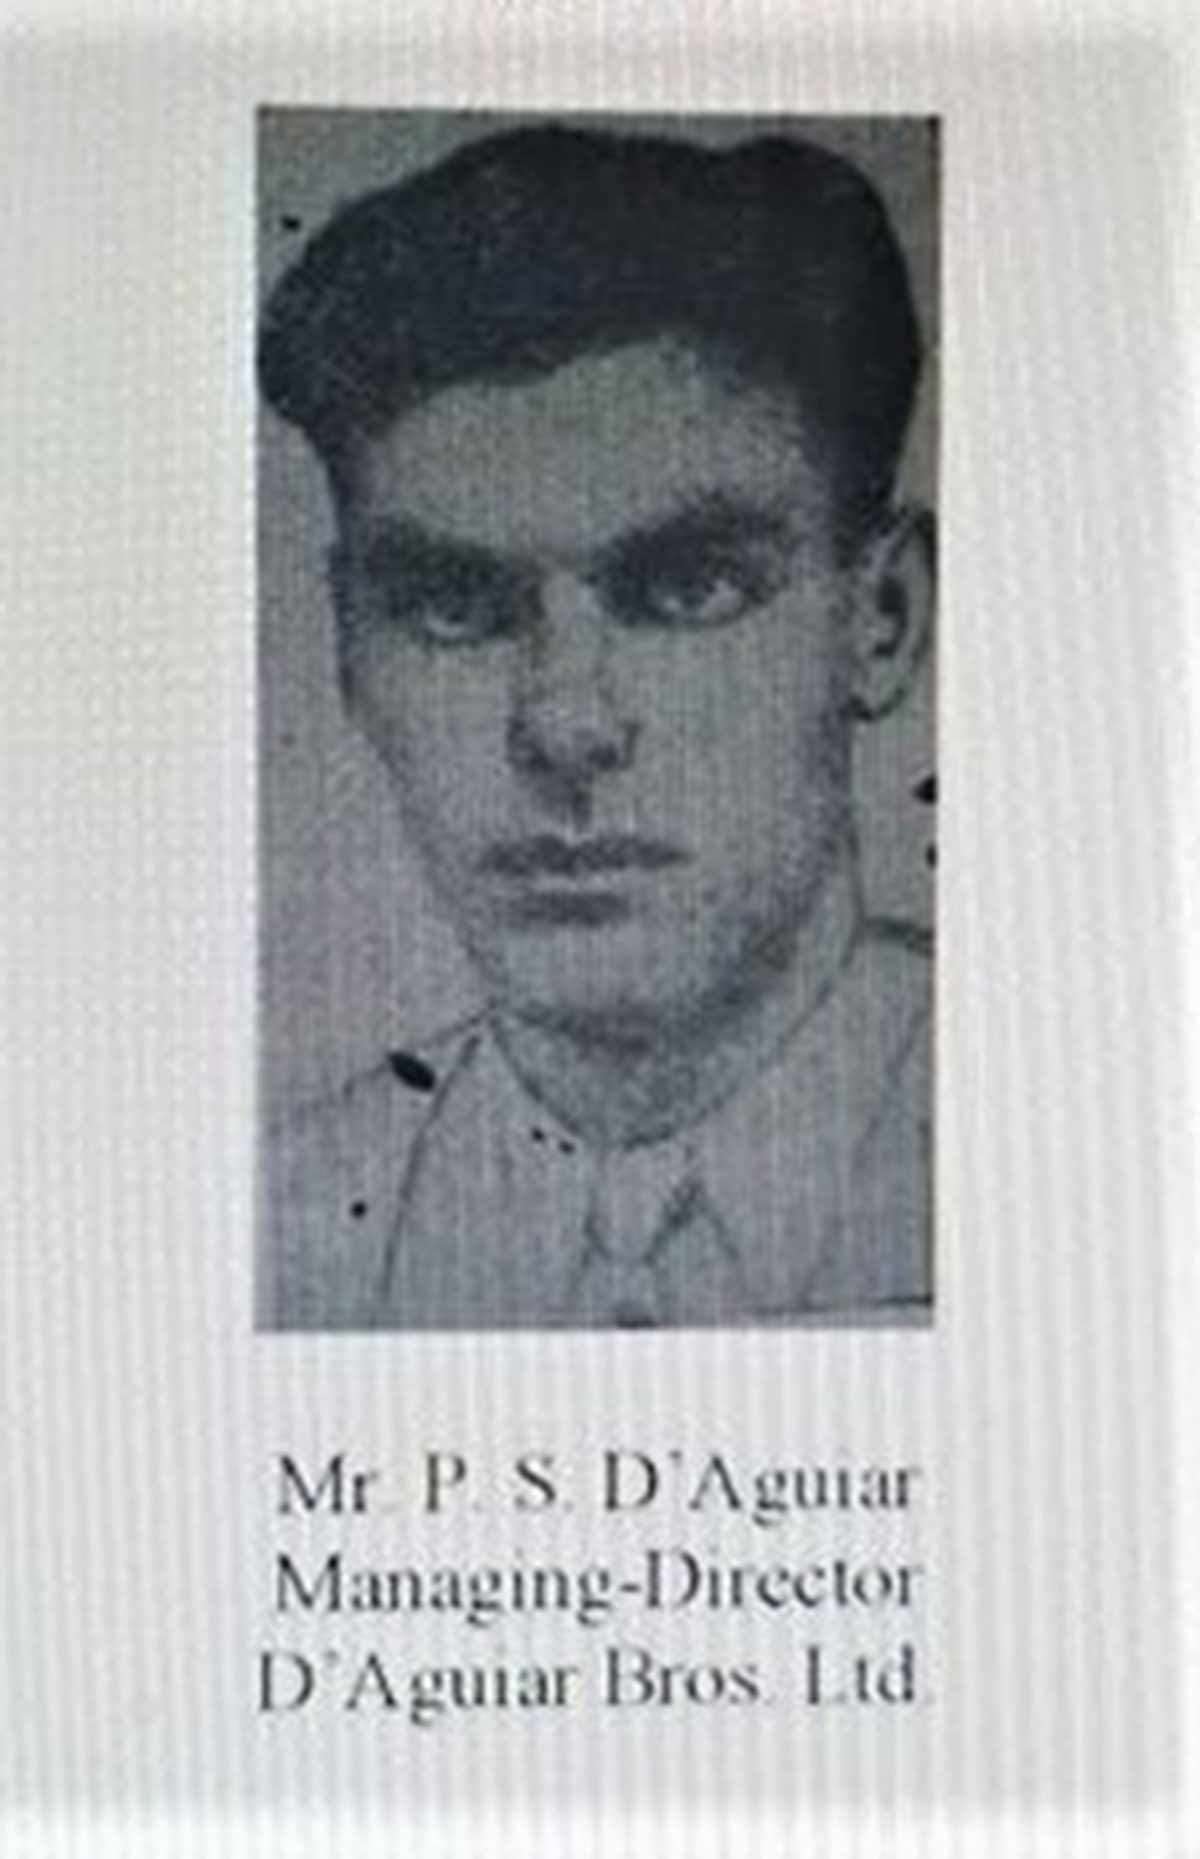 Peter Stanislaus D'Aguiar (Photograph from Who is Who in British Guiana 1945 – 1948)